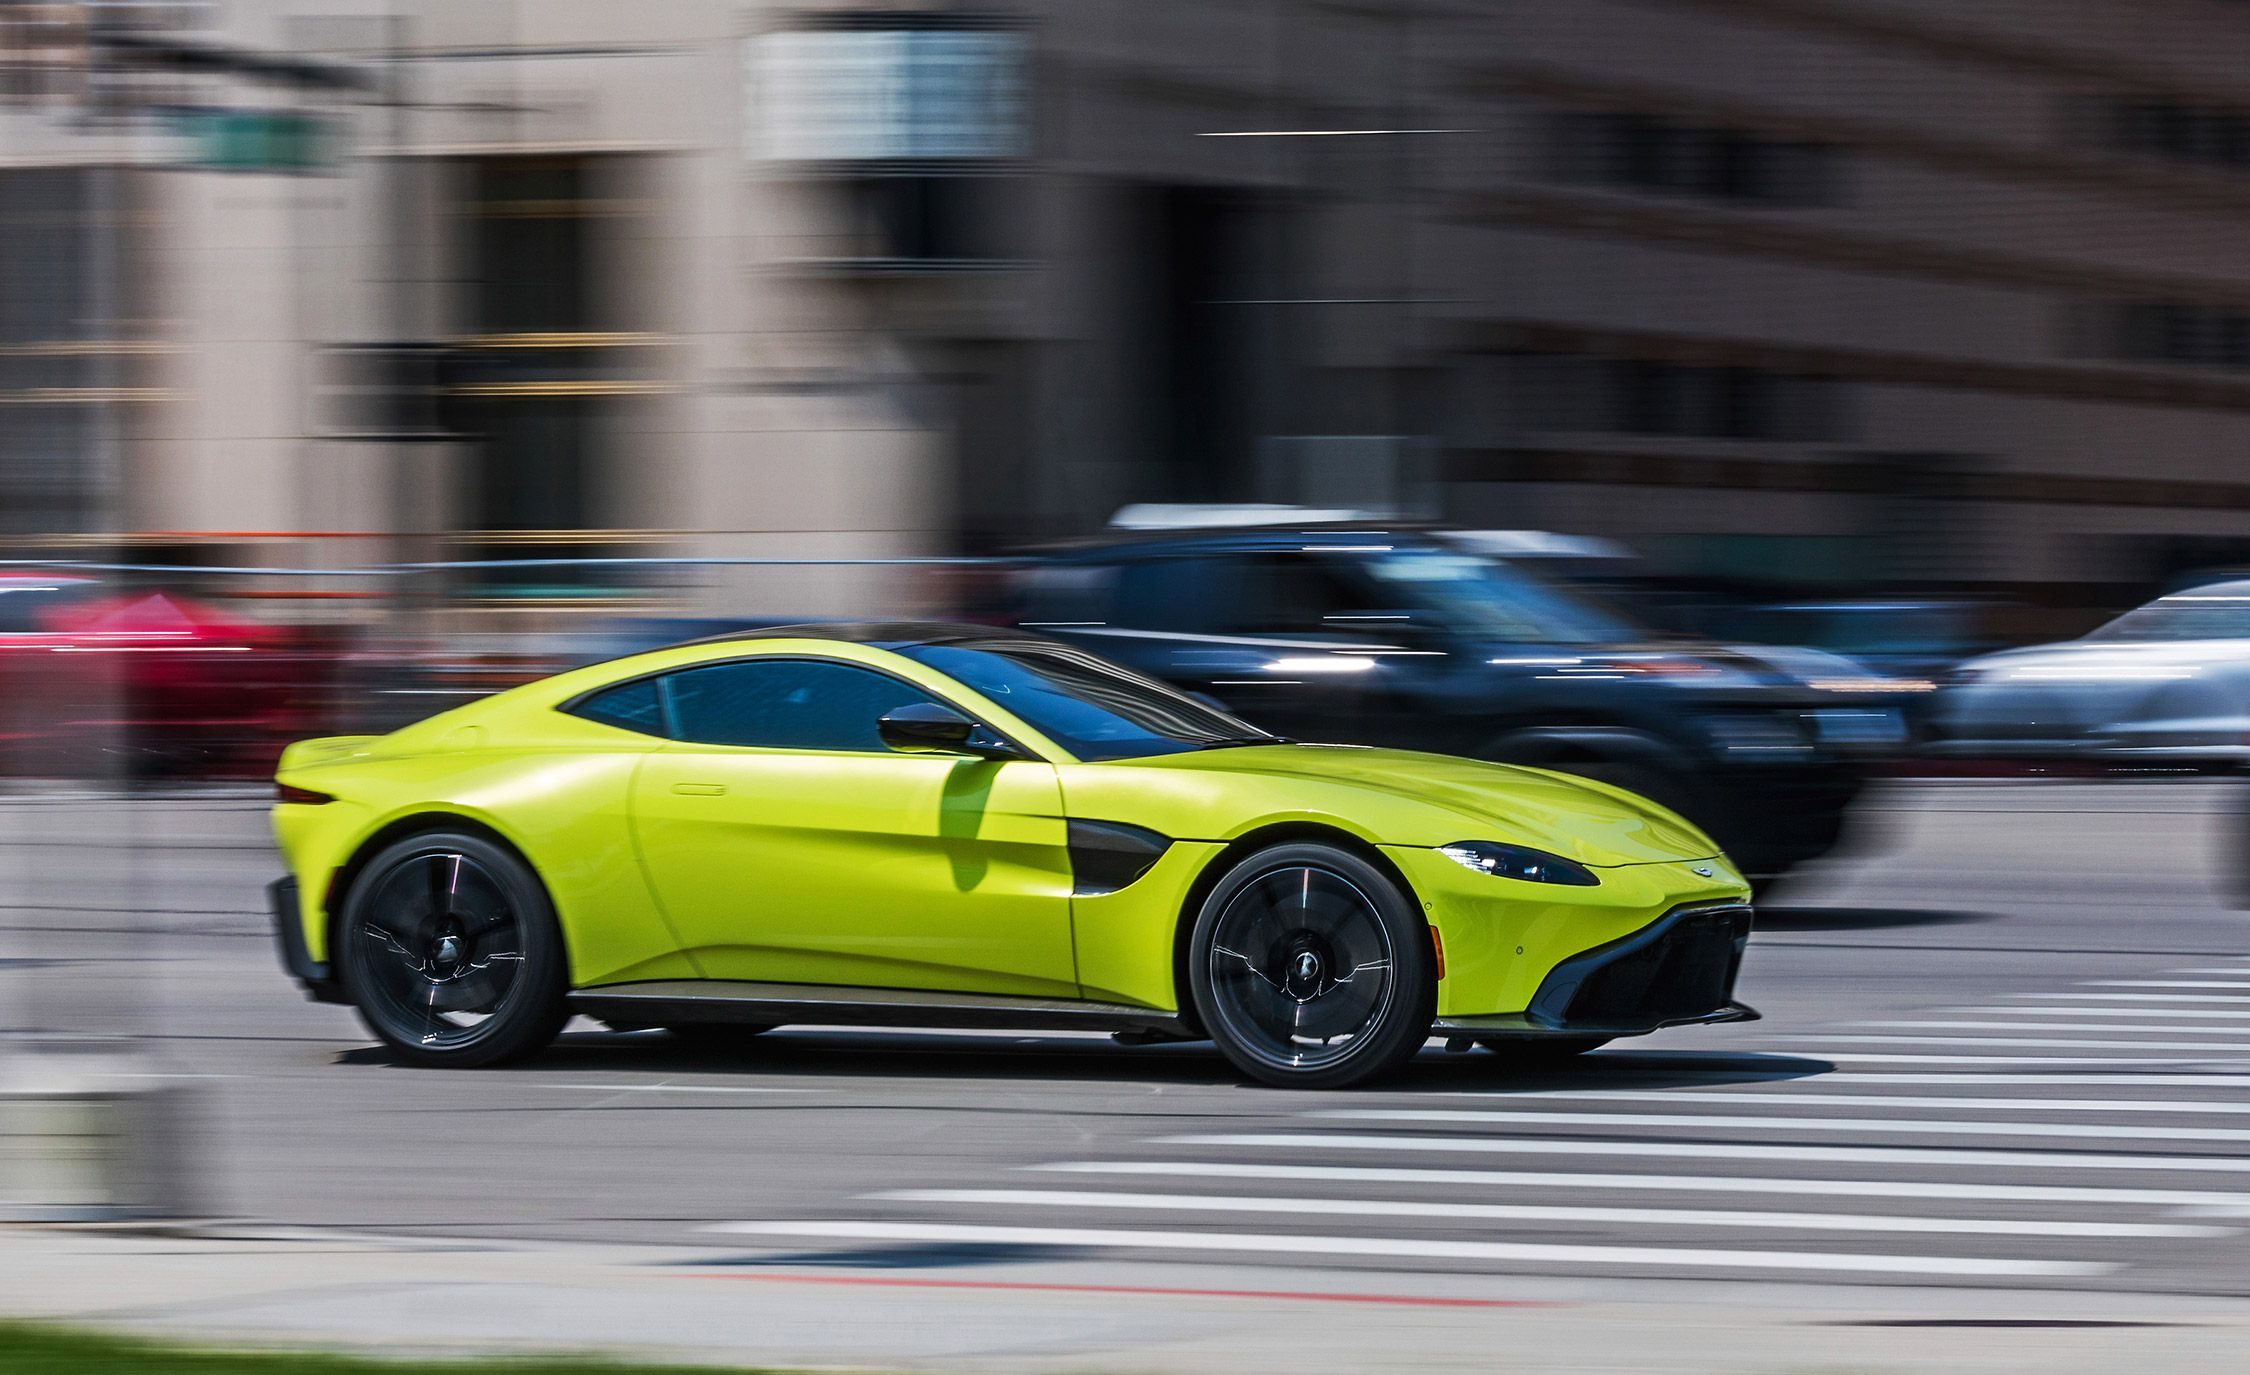 2019 Aston Martin Vantage Reviews Aston Martin Vantage Price